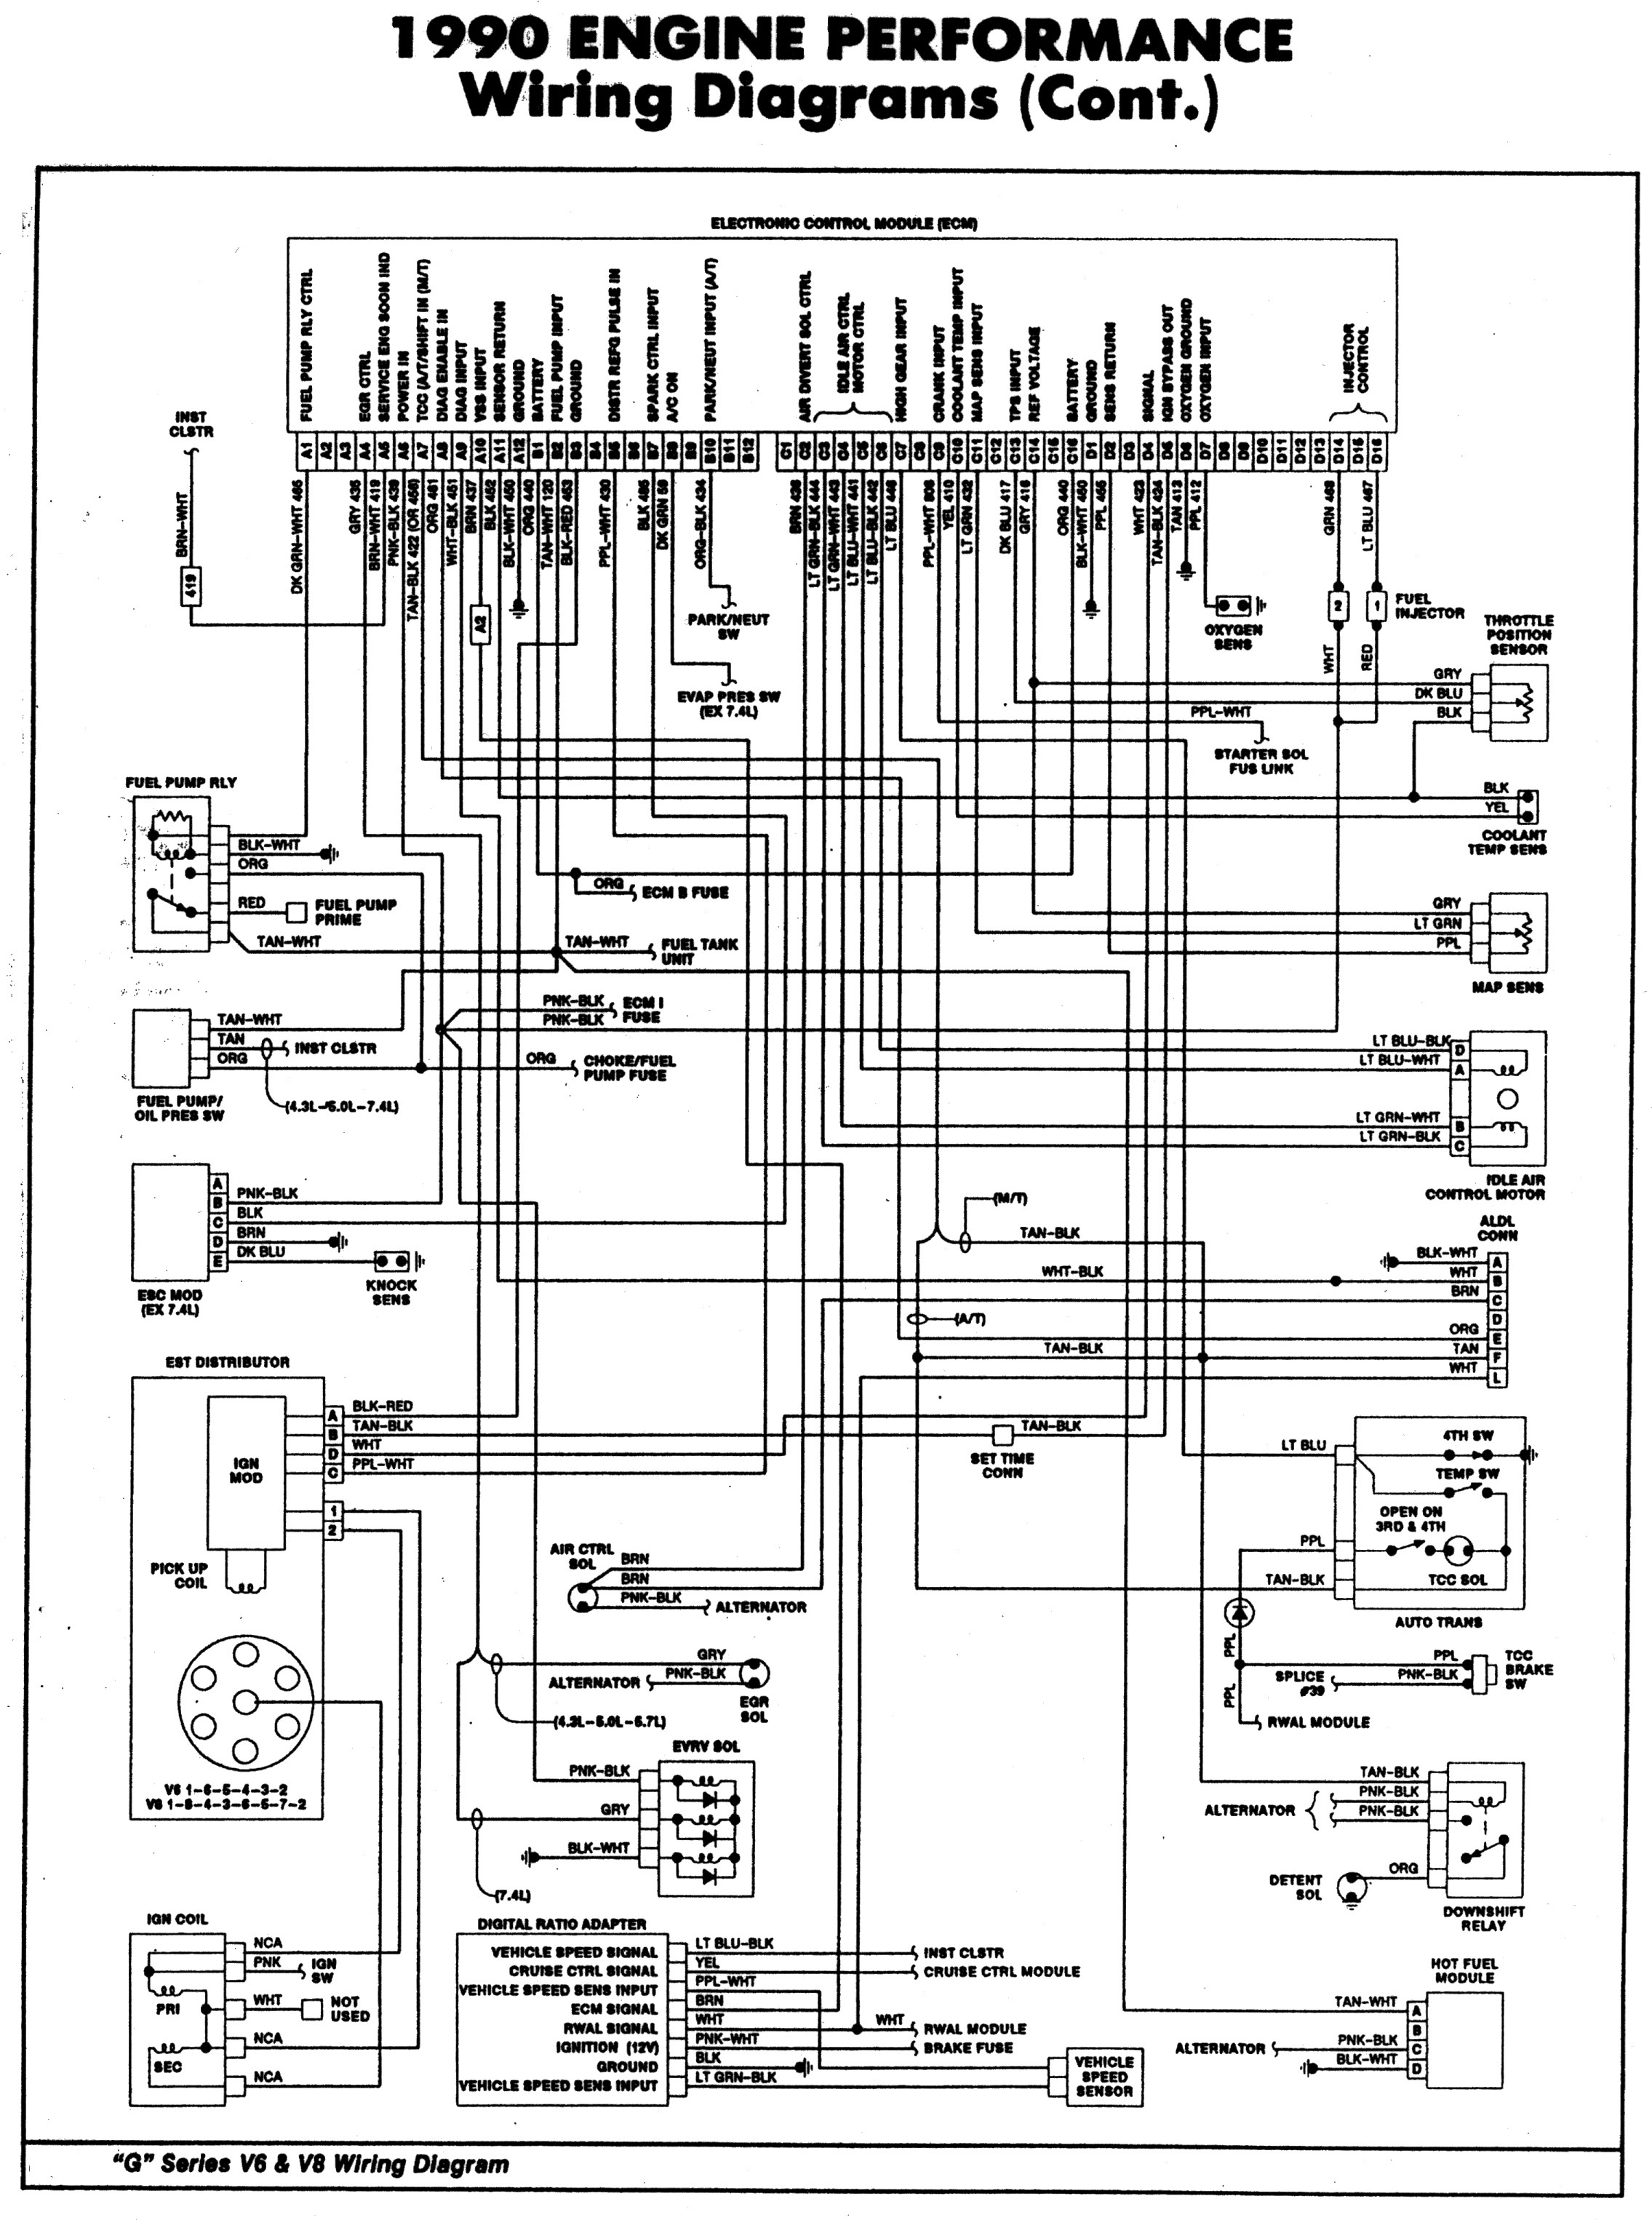 1990 Chev P30 Wiring Diagram - My Wiring Diagram Oil Pressure Wiring Diagram International I on oil pressure regulator diagram, oil pump wiring diagram, oil pressure hose, oil pressure wire, oil pressure control diagram, oil pressure lubrication system, oil pressure sensor, fuel pressure wiring diagram,